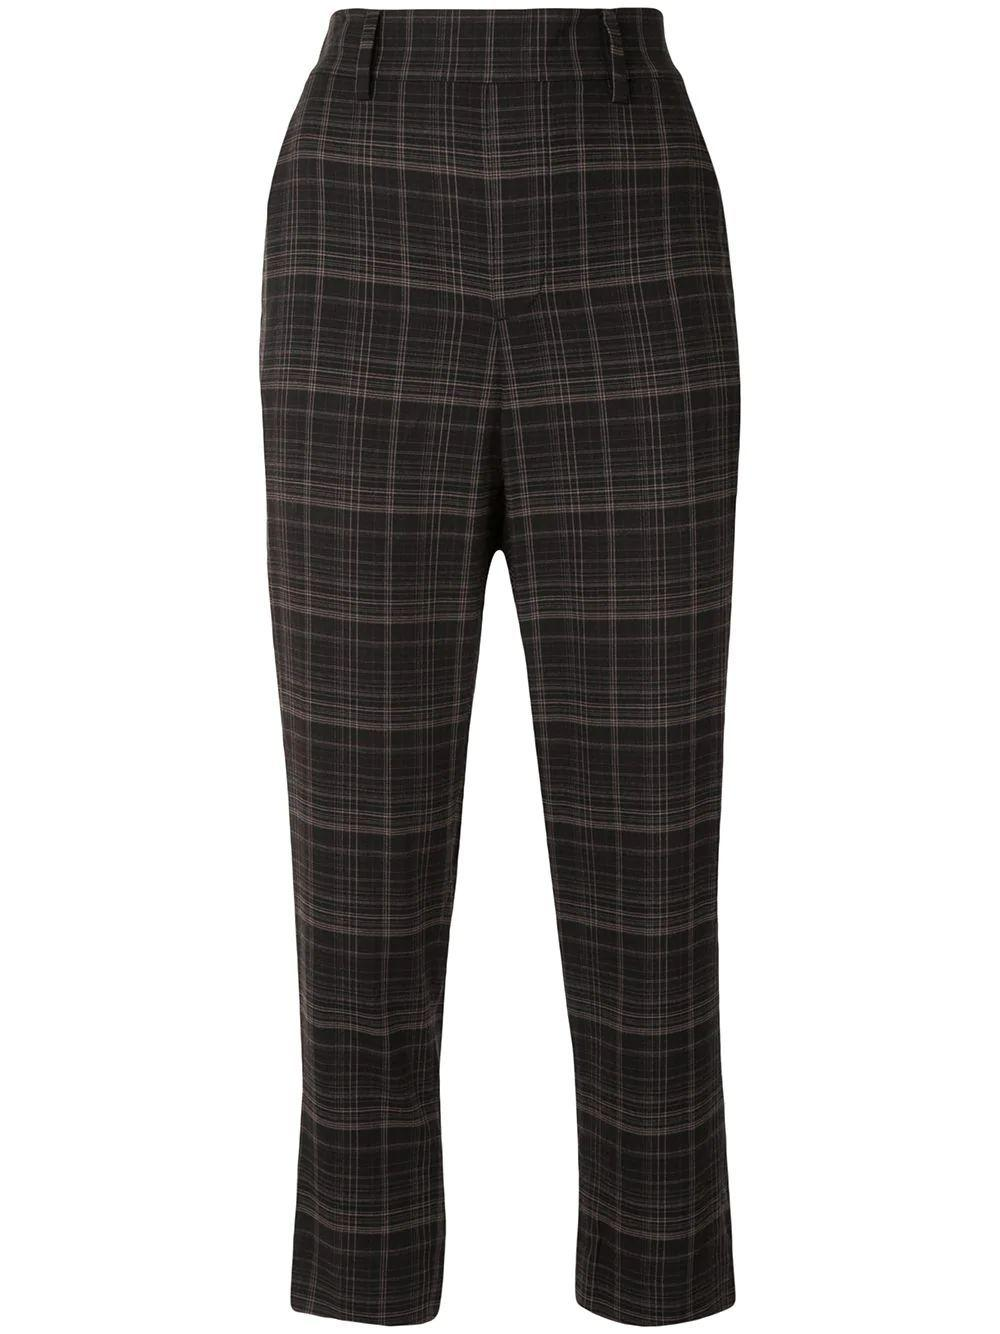 Classic Plaid Pull On Pant Item # V676521890